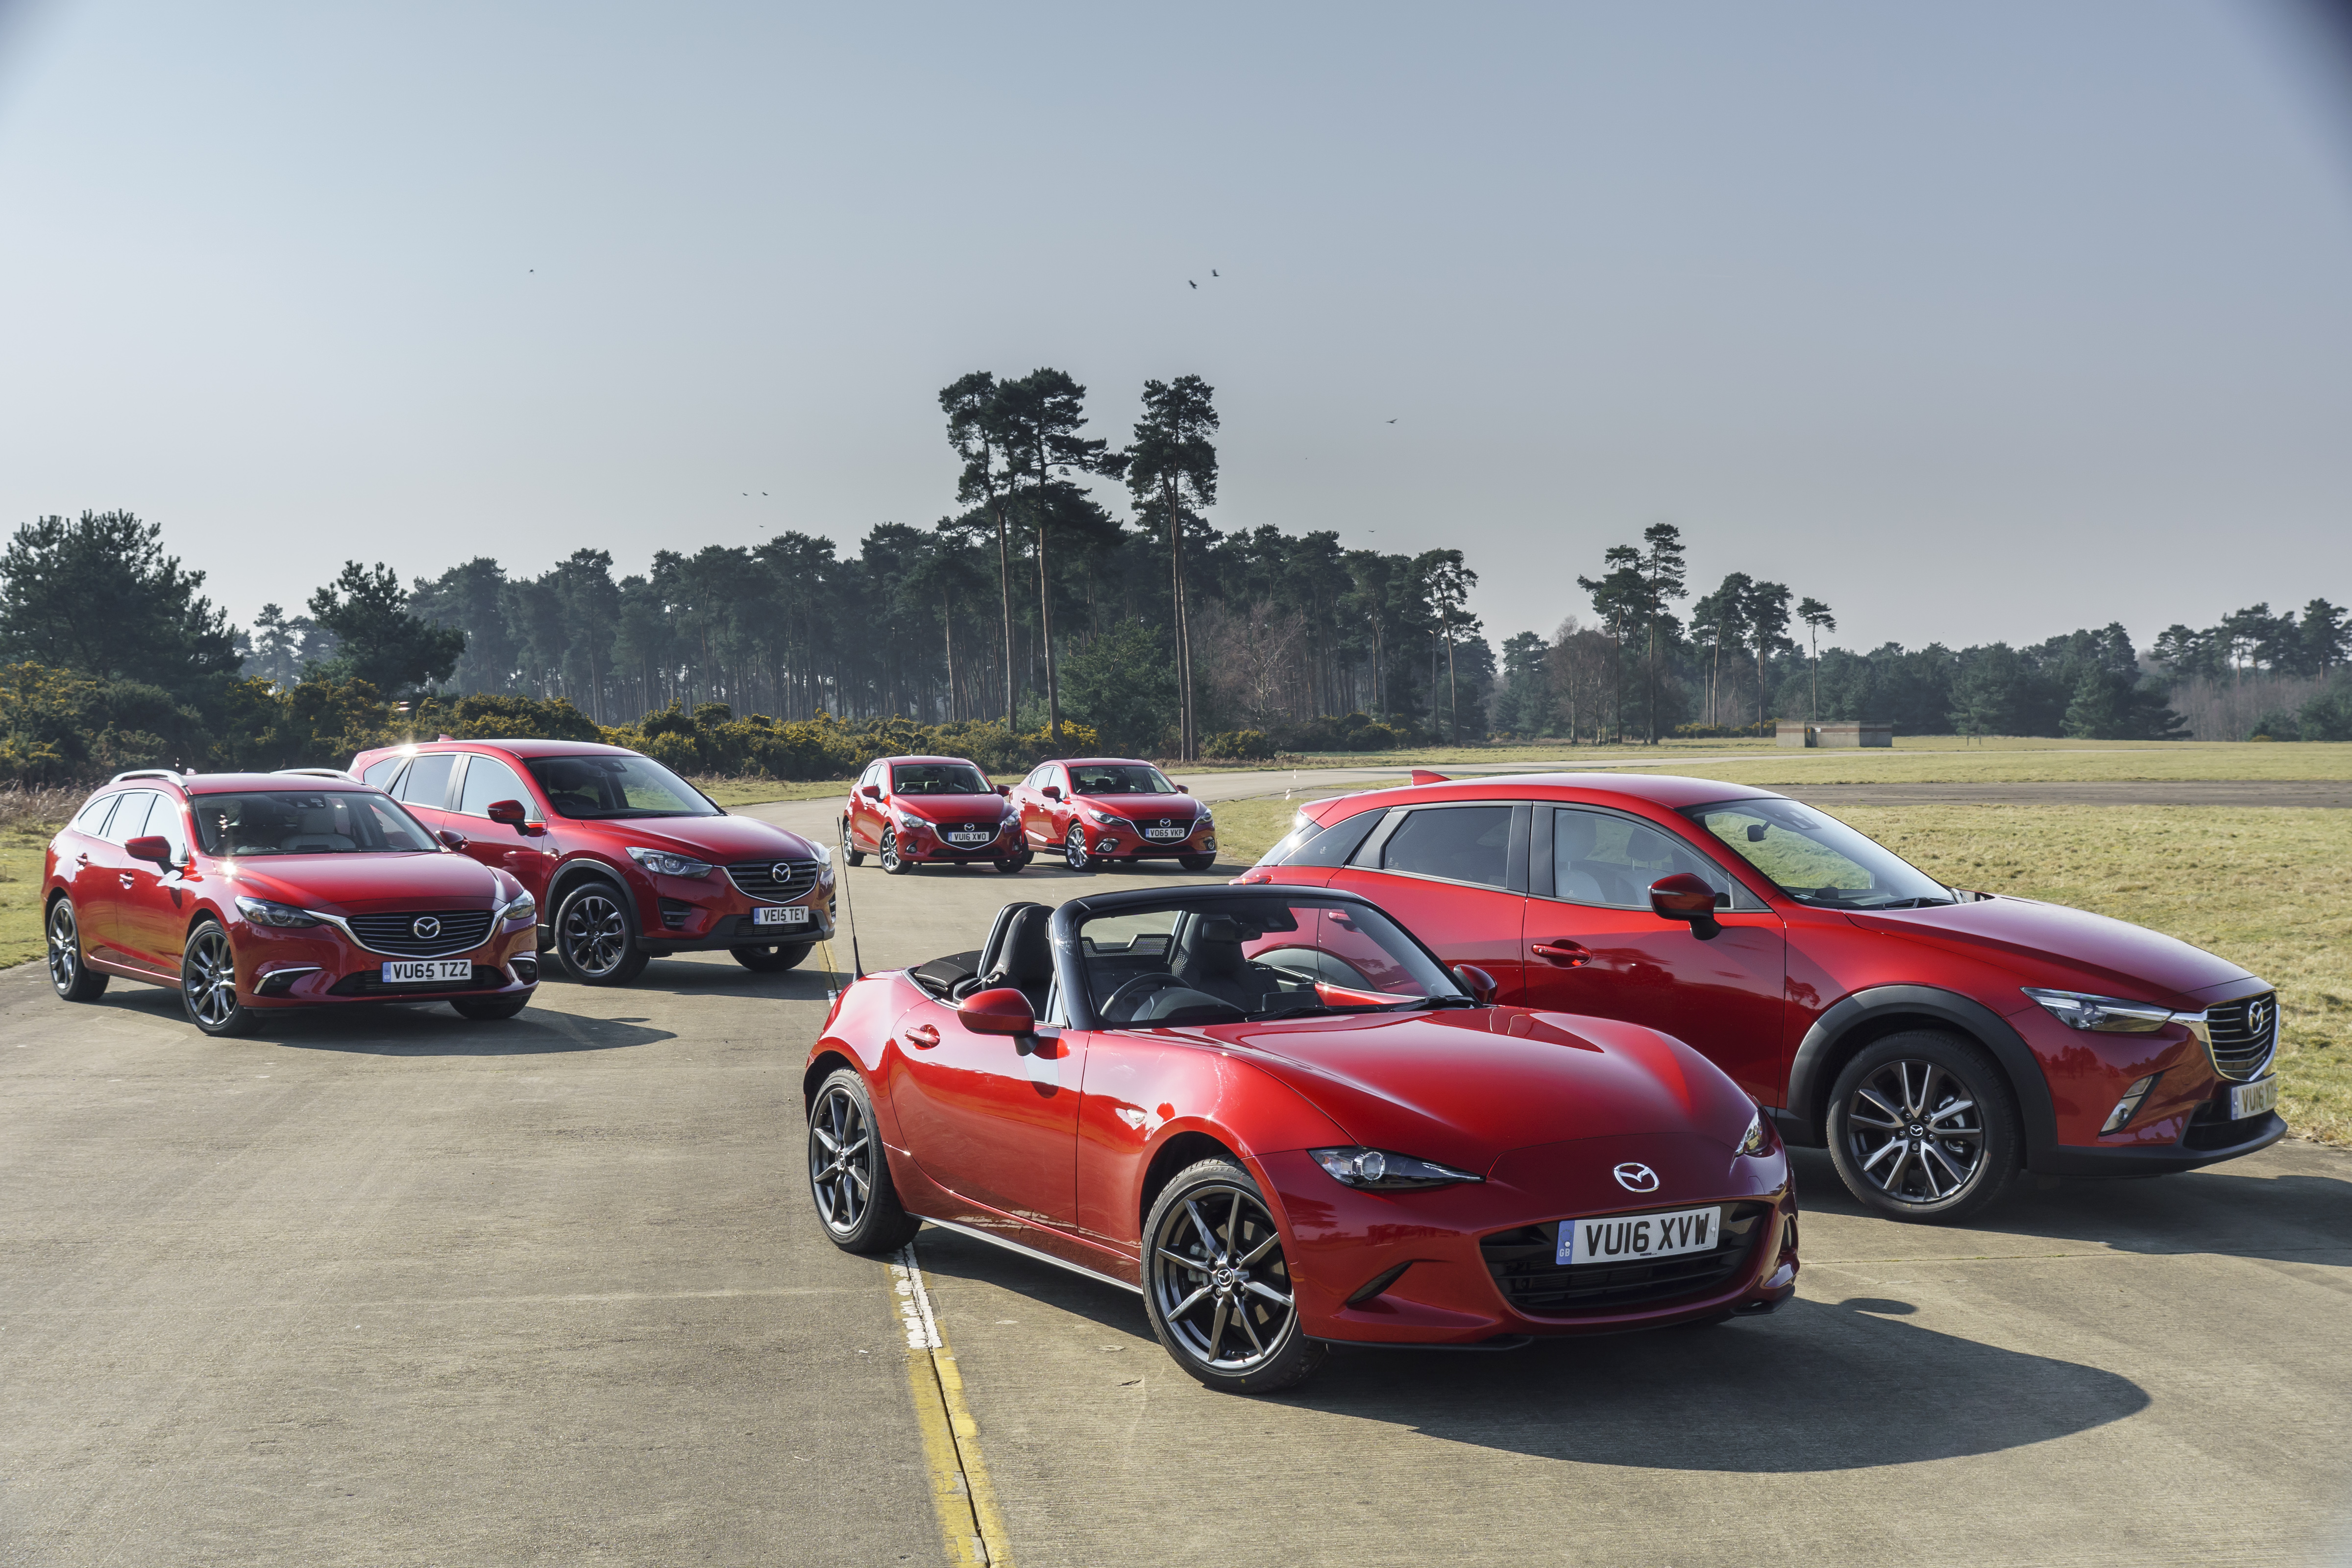 Mazda Leaves No Stone Unturned In Its Efforts To Create Cars That Inspire  Their Drivers. One Of The Ways It Does This Is With What It Calls The Gram  ...